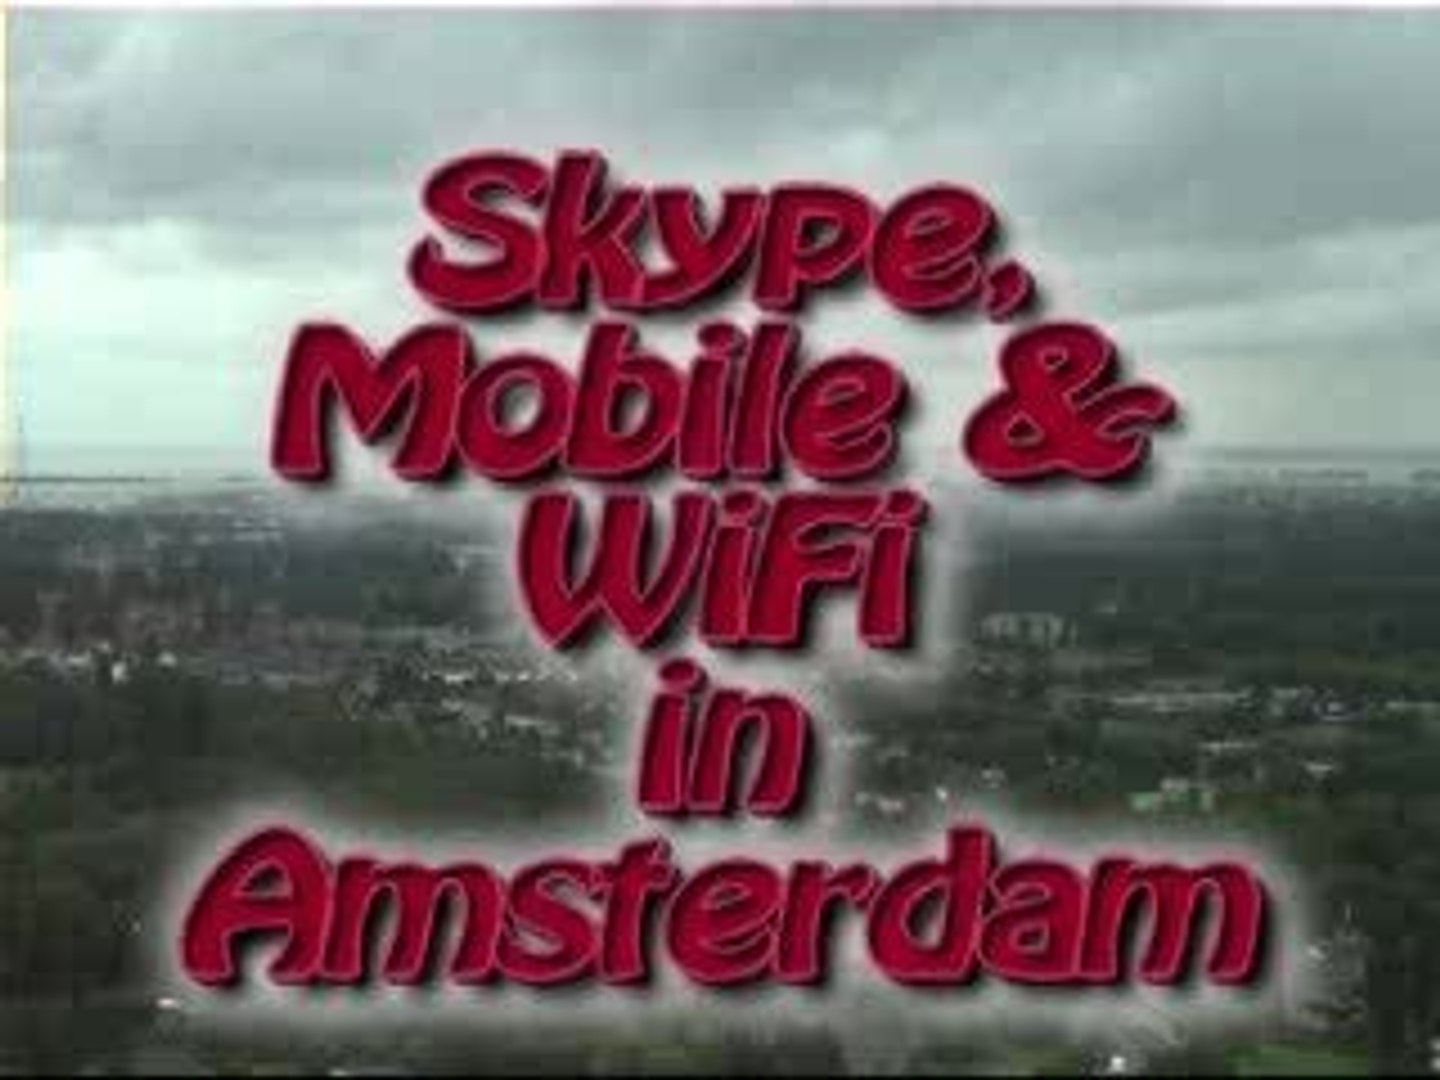 Skype, mobile and Wifi in Amsterdam